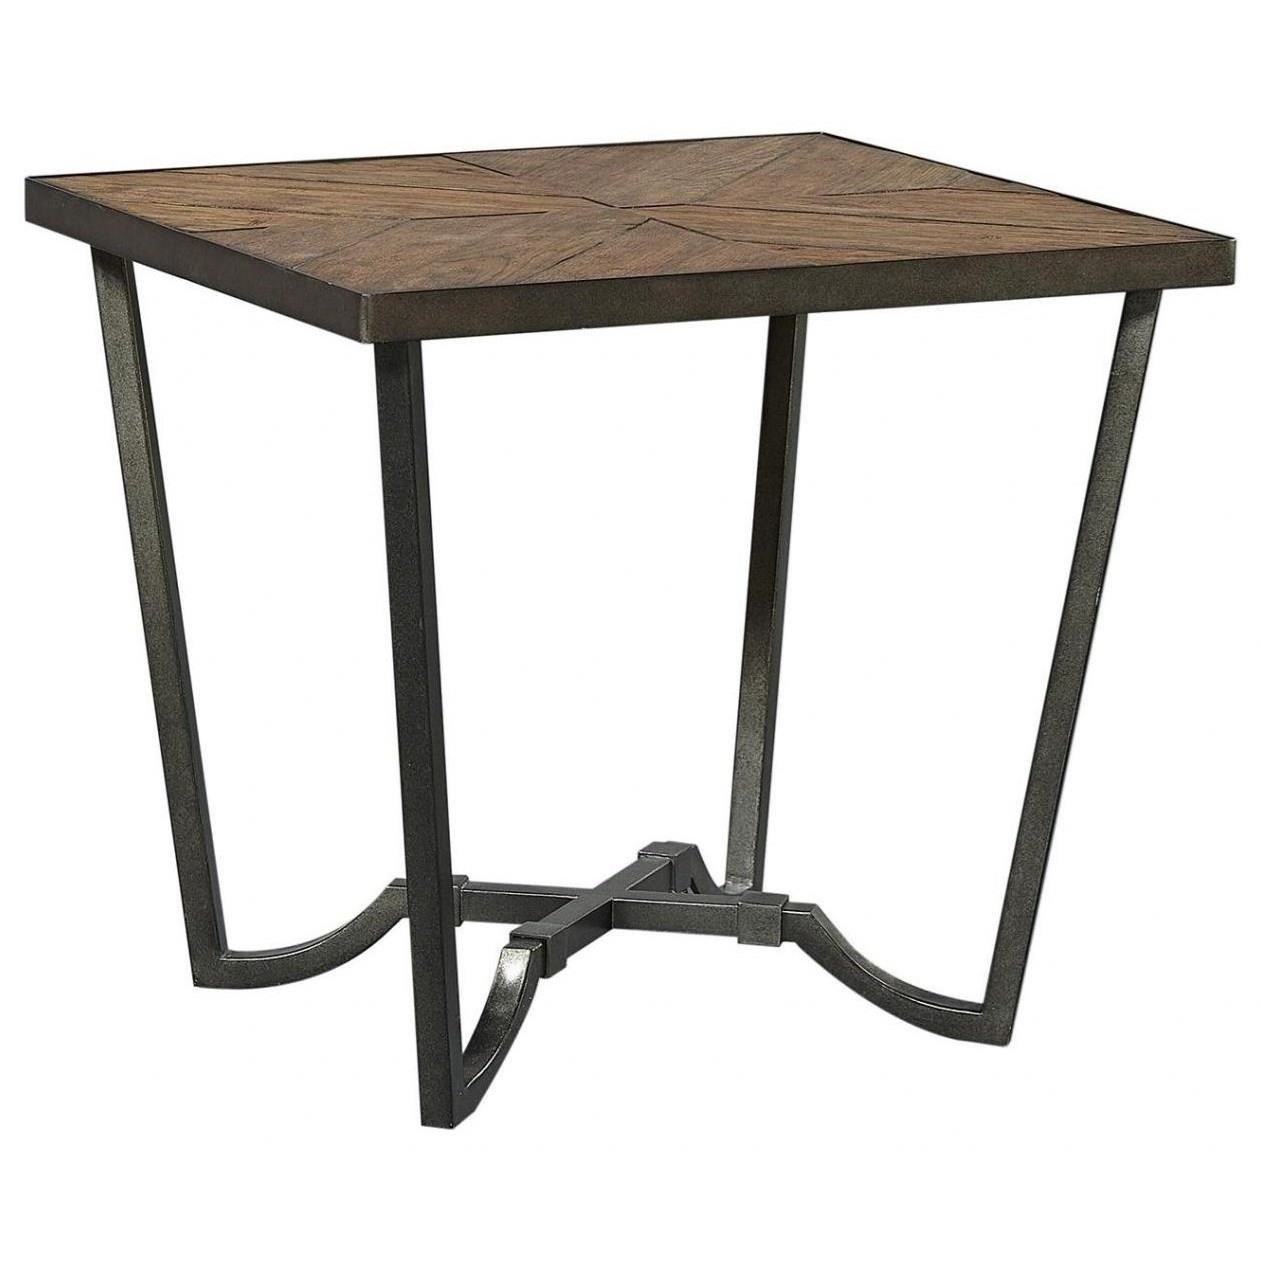 Mosaic End Table with Wood Top by Aspenhome at Walker's Furniture